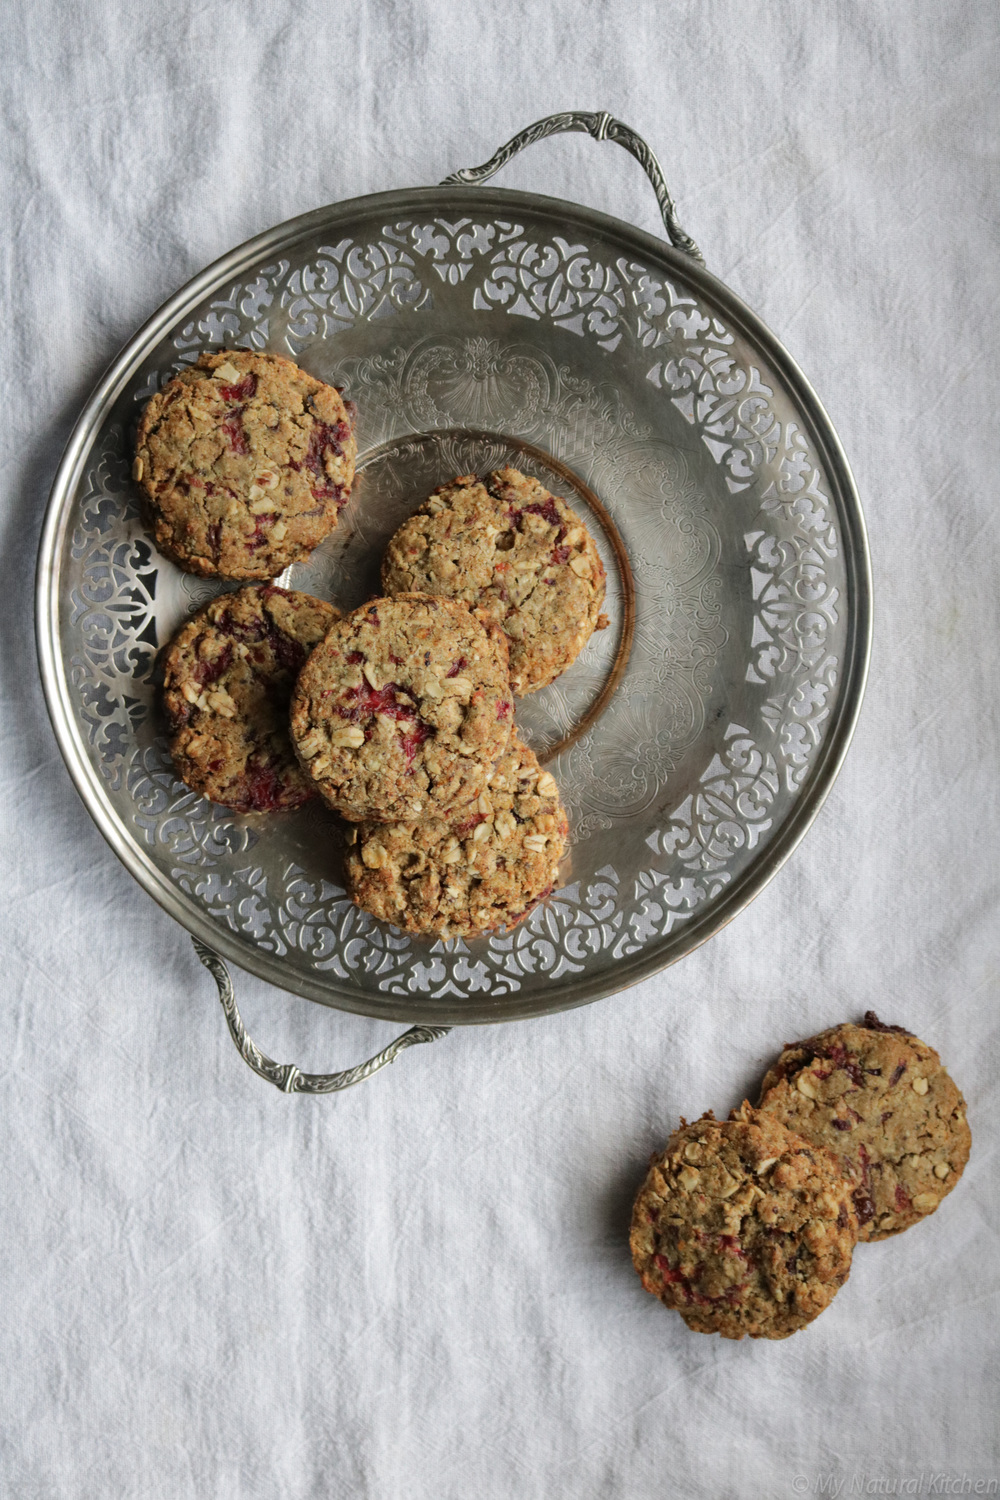 roasted blood orange & dark chocolate scones #glutenfree #vegan from mynaturalkitchenblog.com